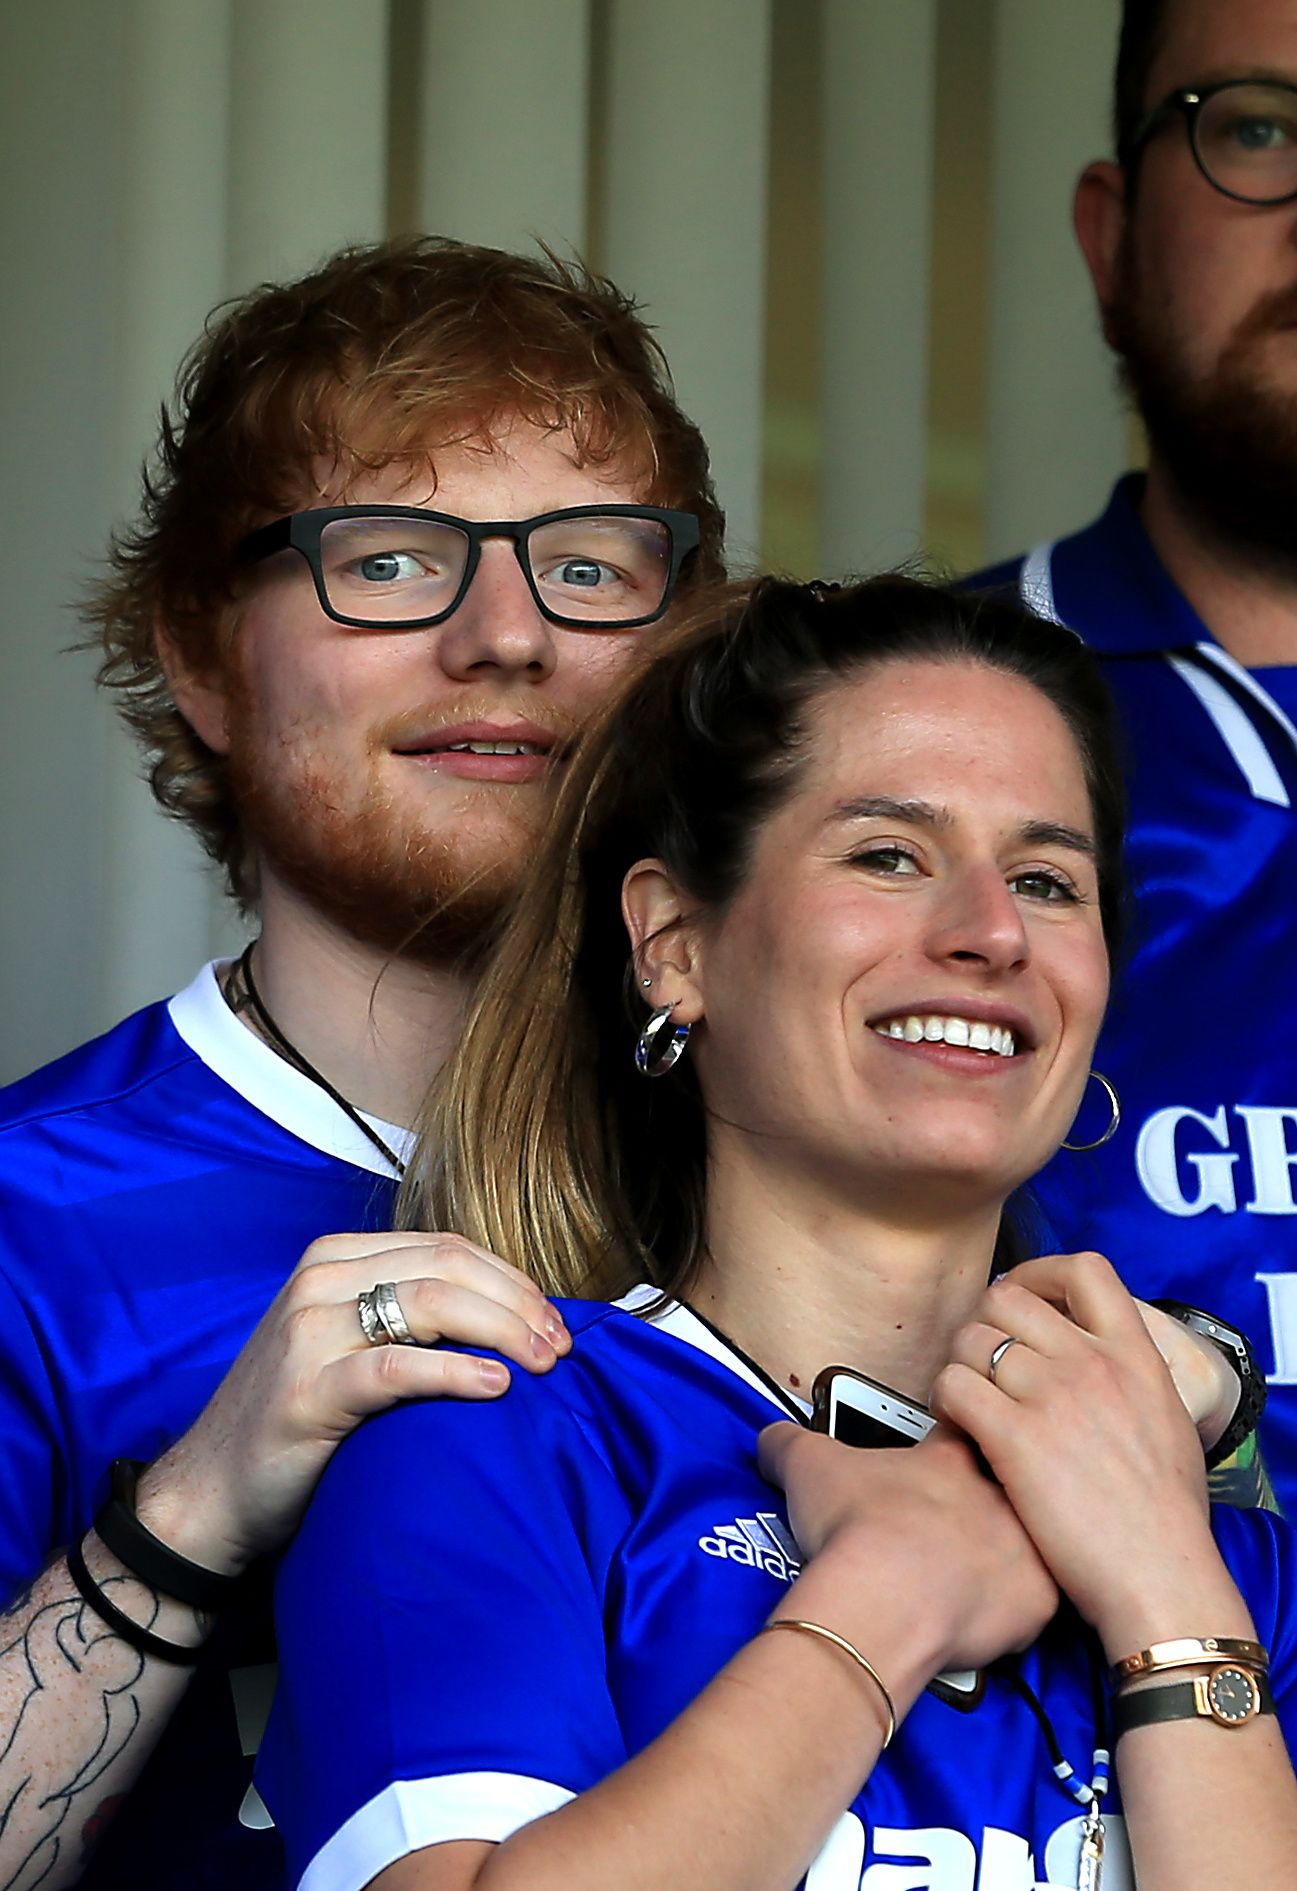 Ed Sheeran and wife Cherry Seaborn at the Sky Bet Championship match between Ipswich Town and Aston Villa at Portman Road on April 21, 2018 | Photo: Getty Images